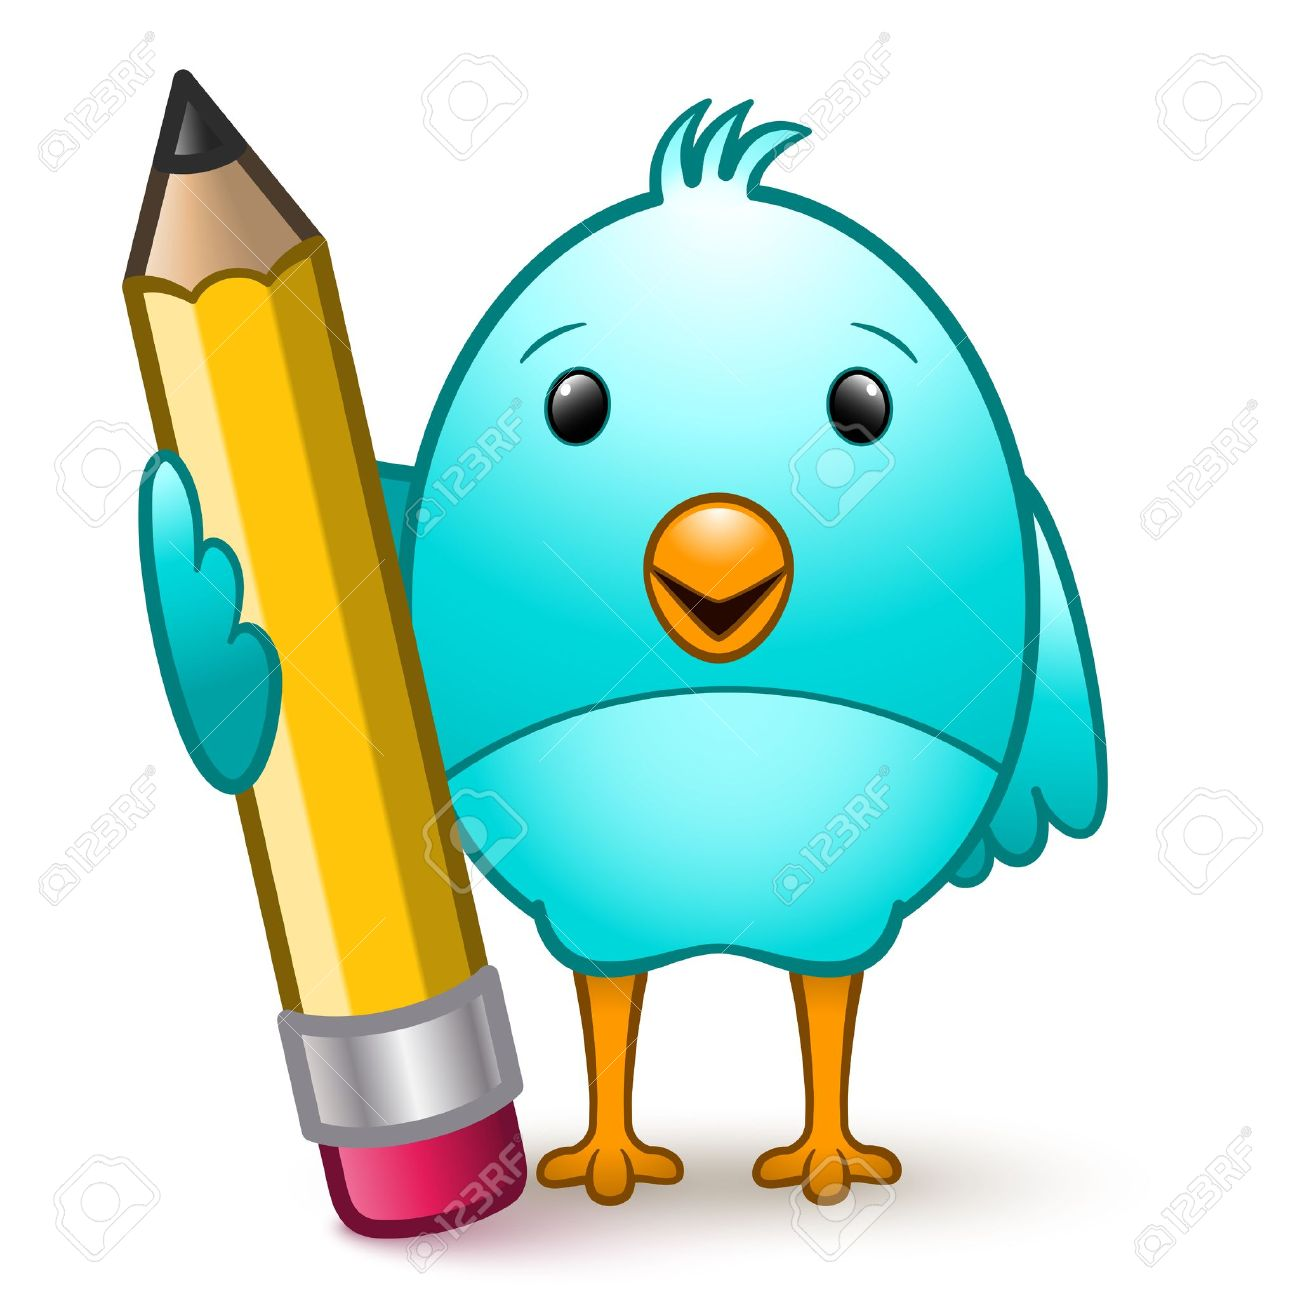 Cartoon Character Bird Standing Holding A Giant Pencil Royalty.